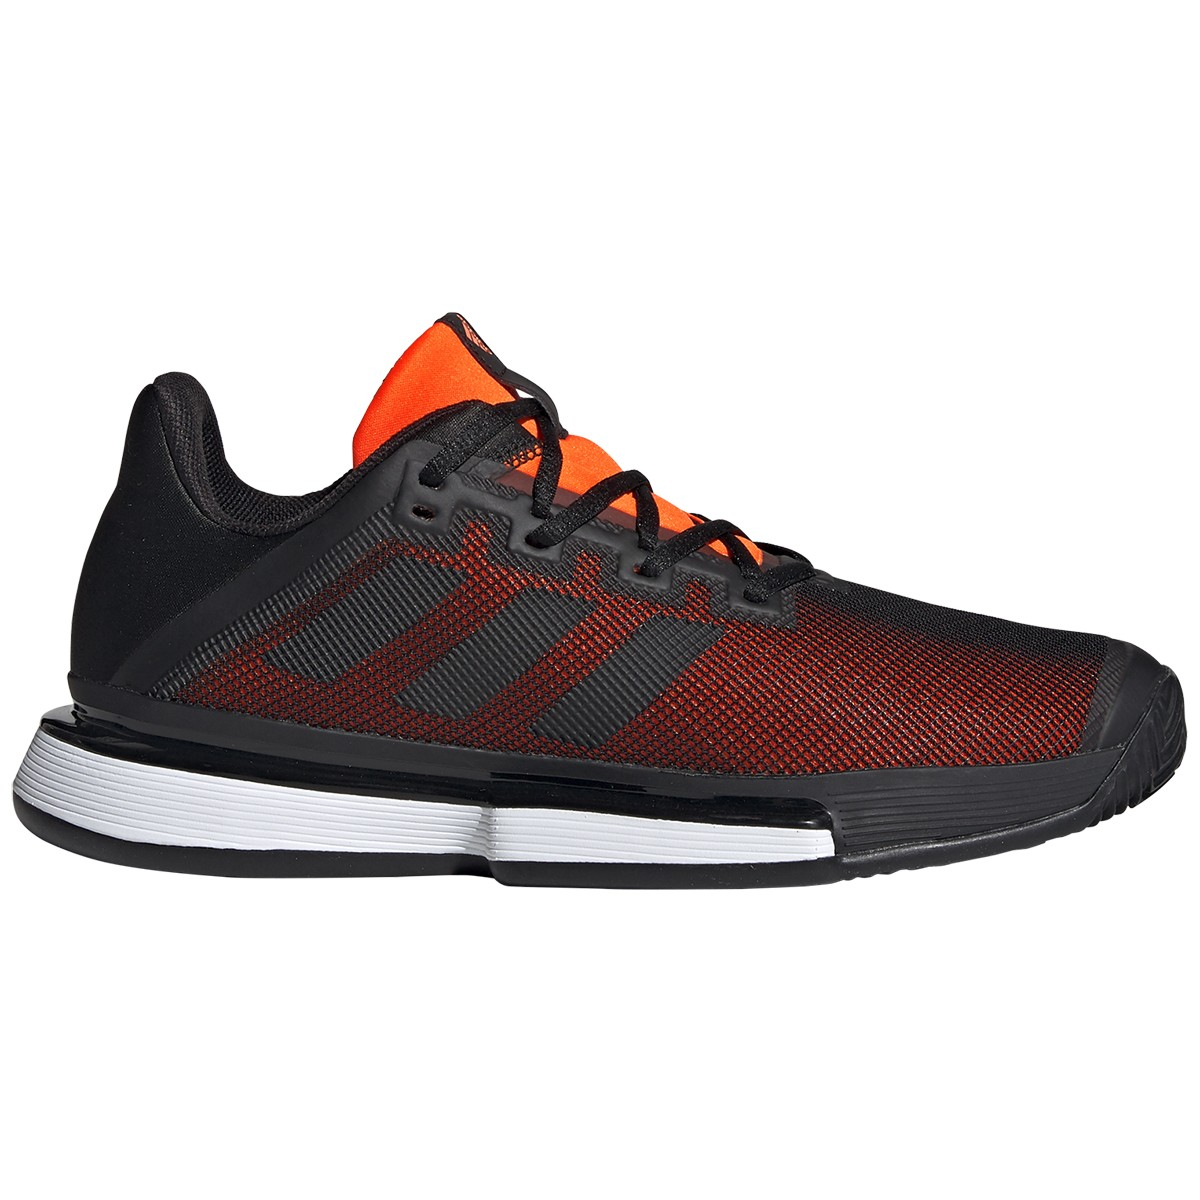 temperament skor gratis frakt toppmode ADIDAS SOLEMATCH BOUNCE CLAY COURT SHOES - ADIDAS - Men's - Shoes ...